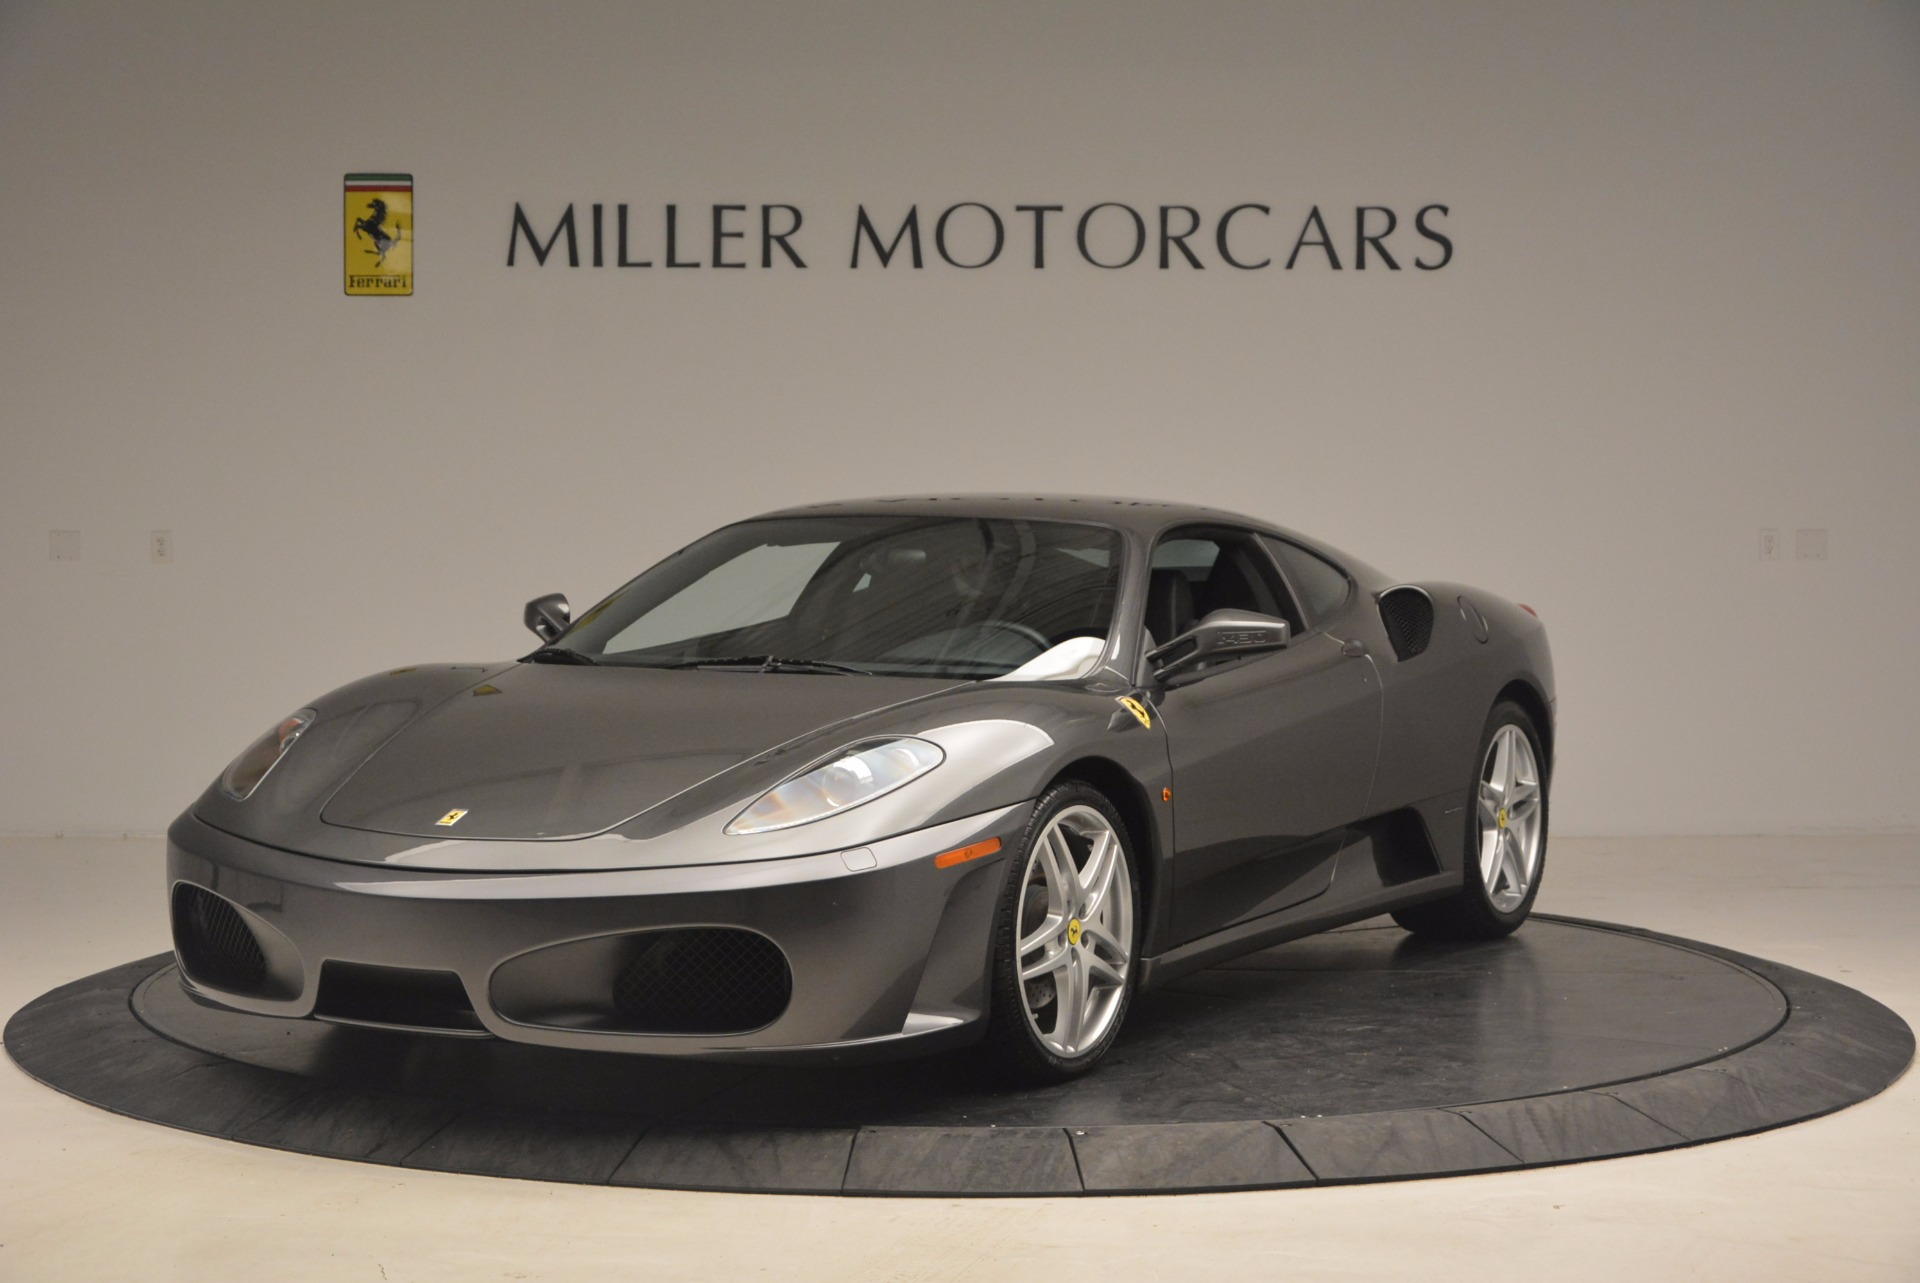 Used 2005 Ferrari F430 6-Speed Manual for sale Sold at Aston Martin of Greenwich in Greenwich CT 06830 1